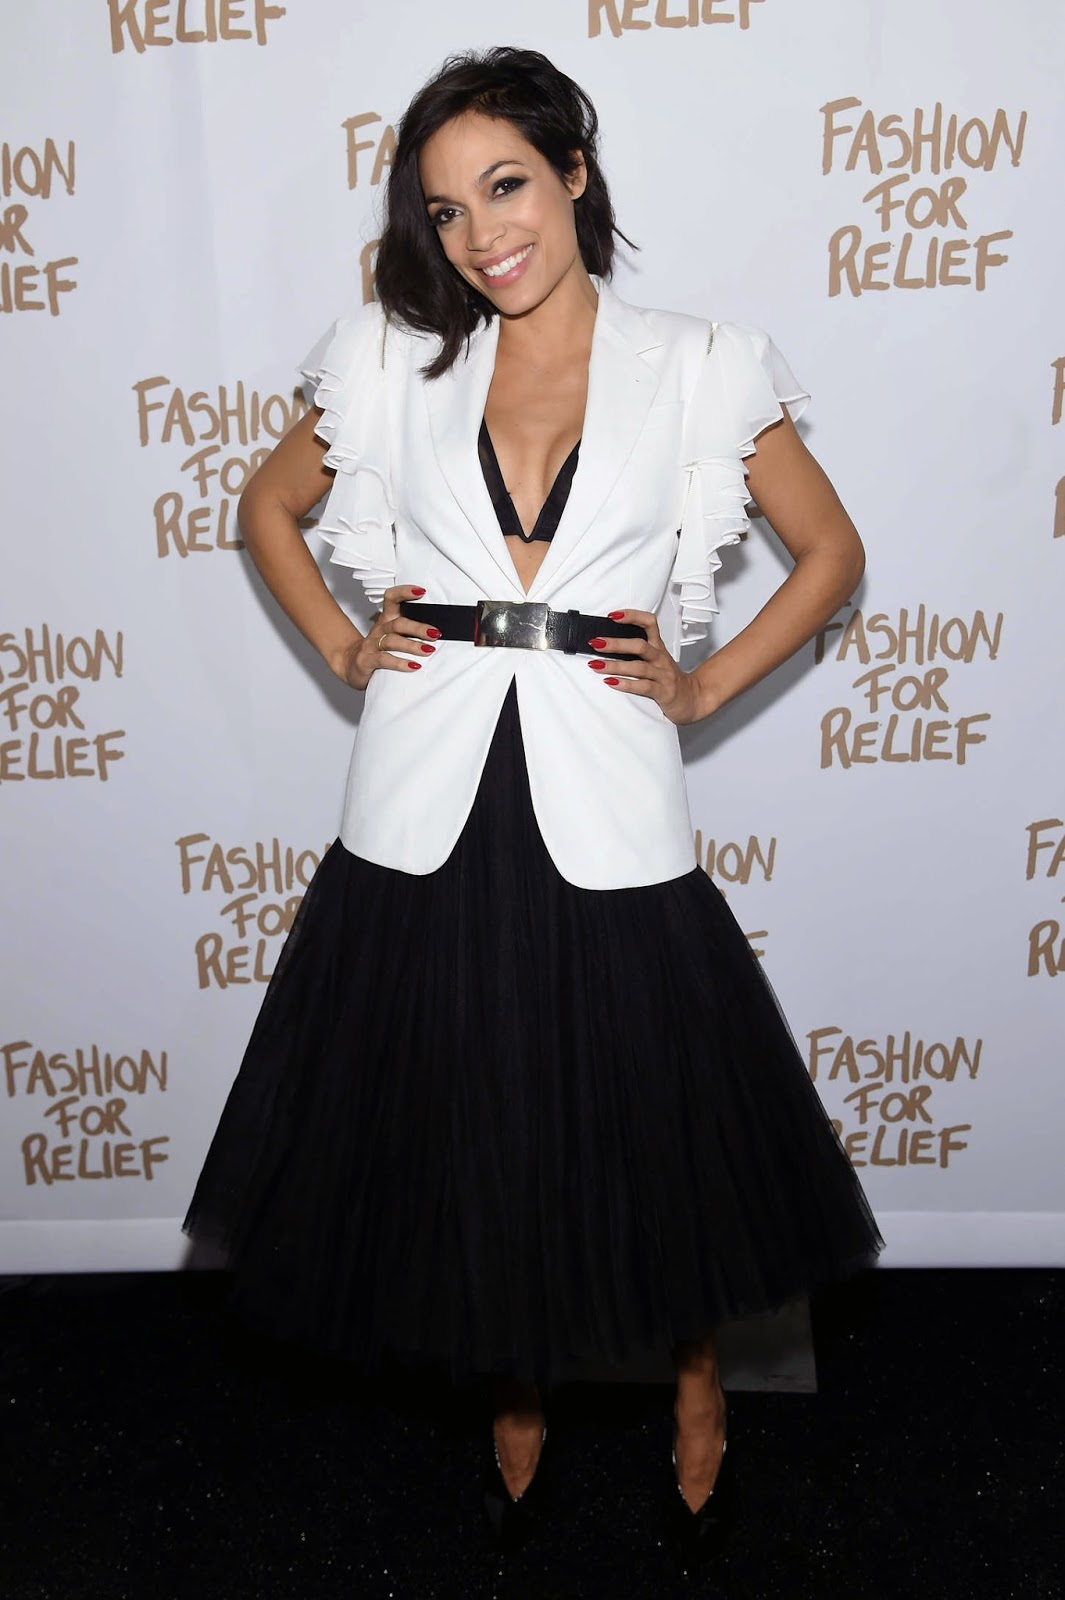 Naomi Campbell's Fashion for Relief Charity Fashion Show in NYC